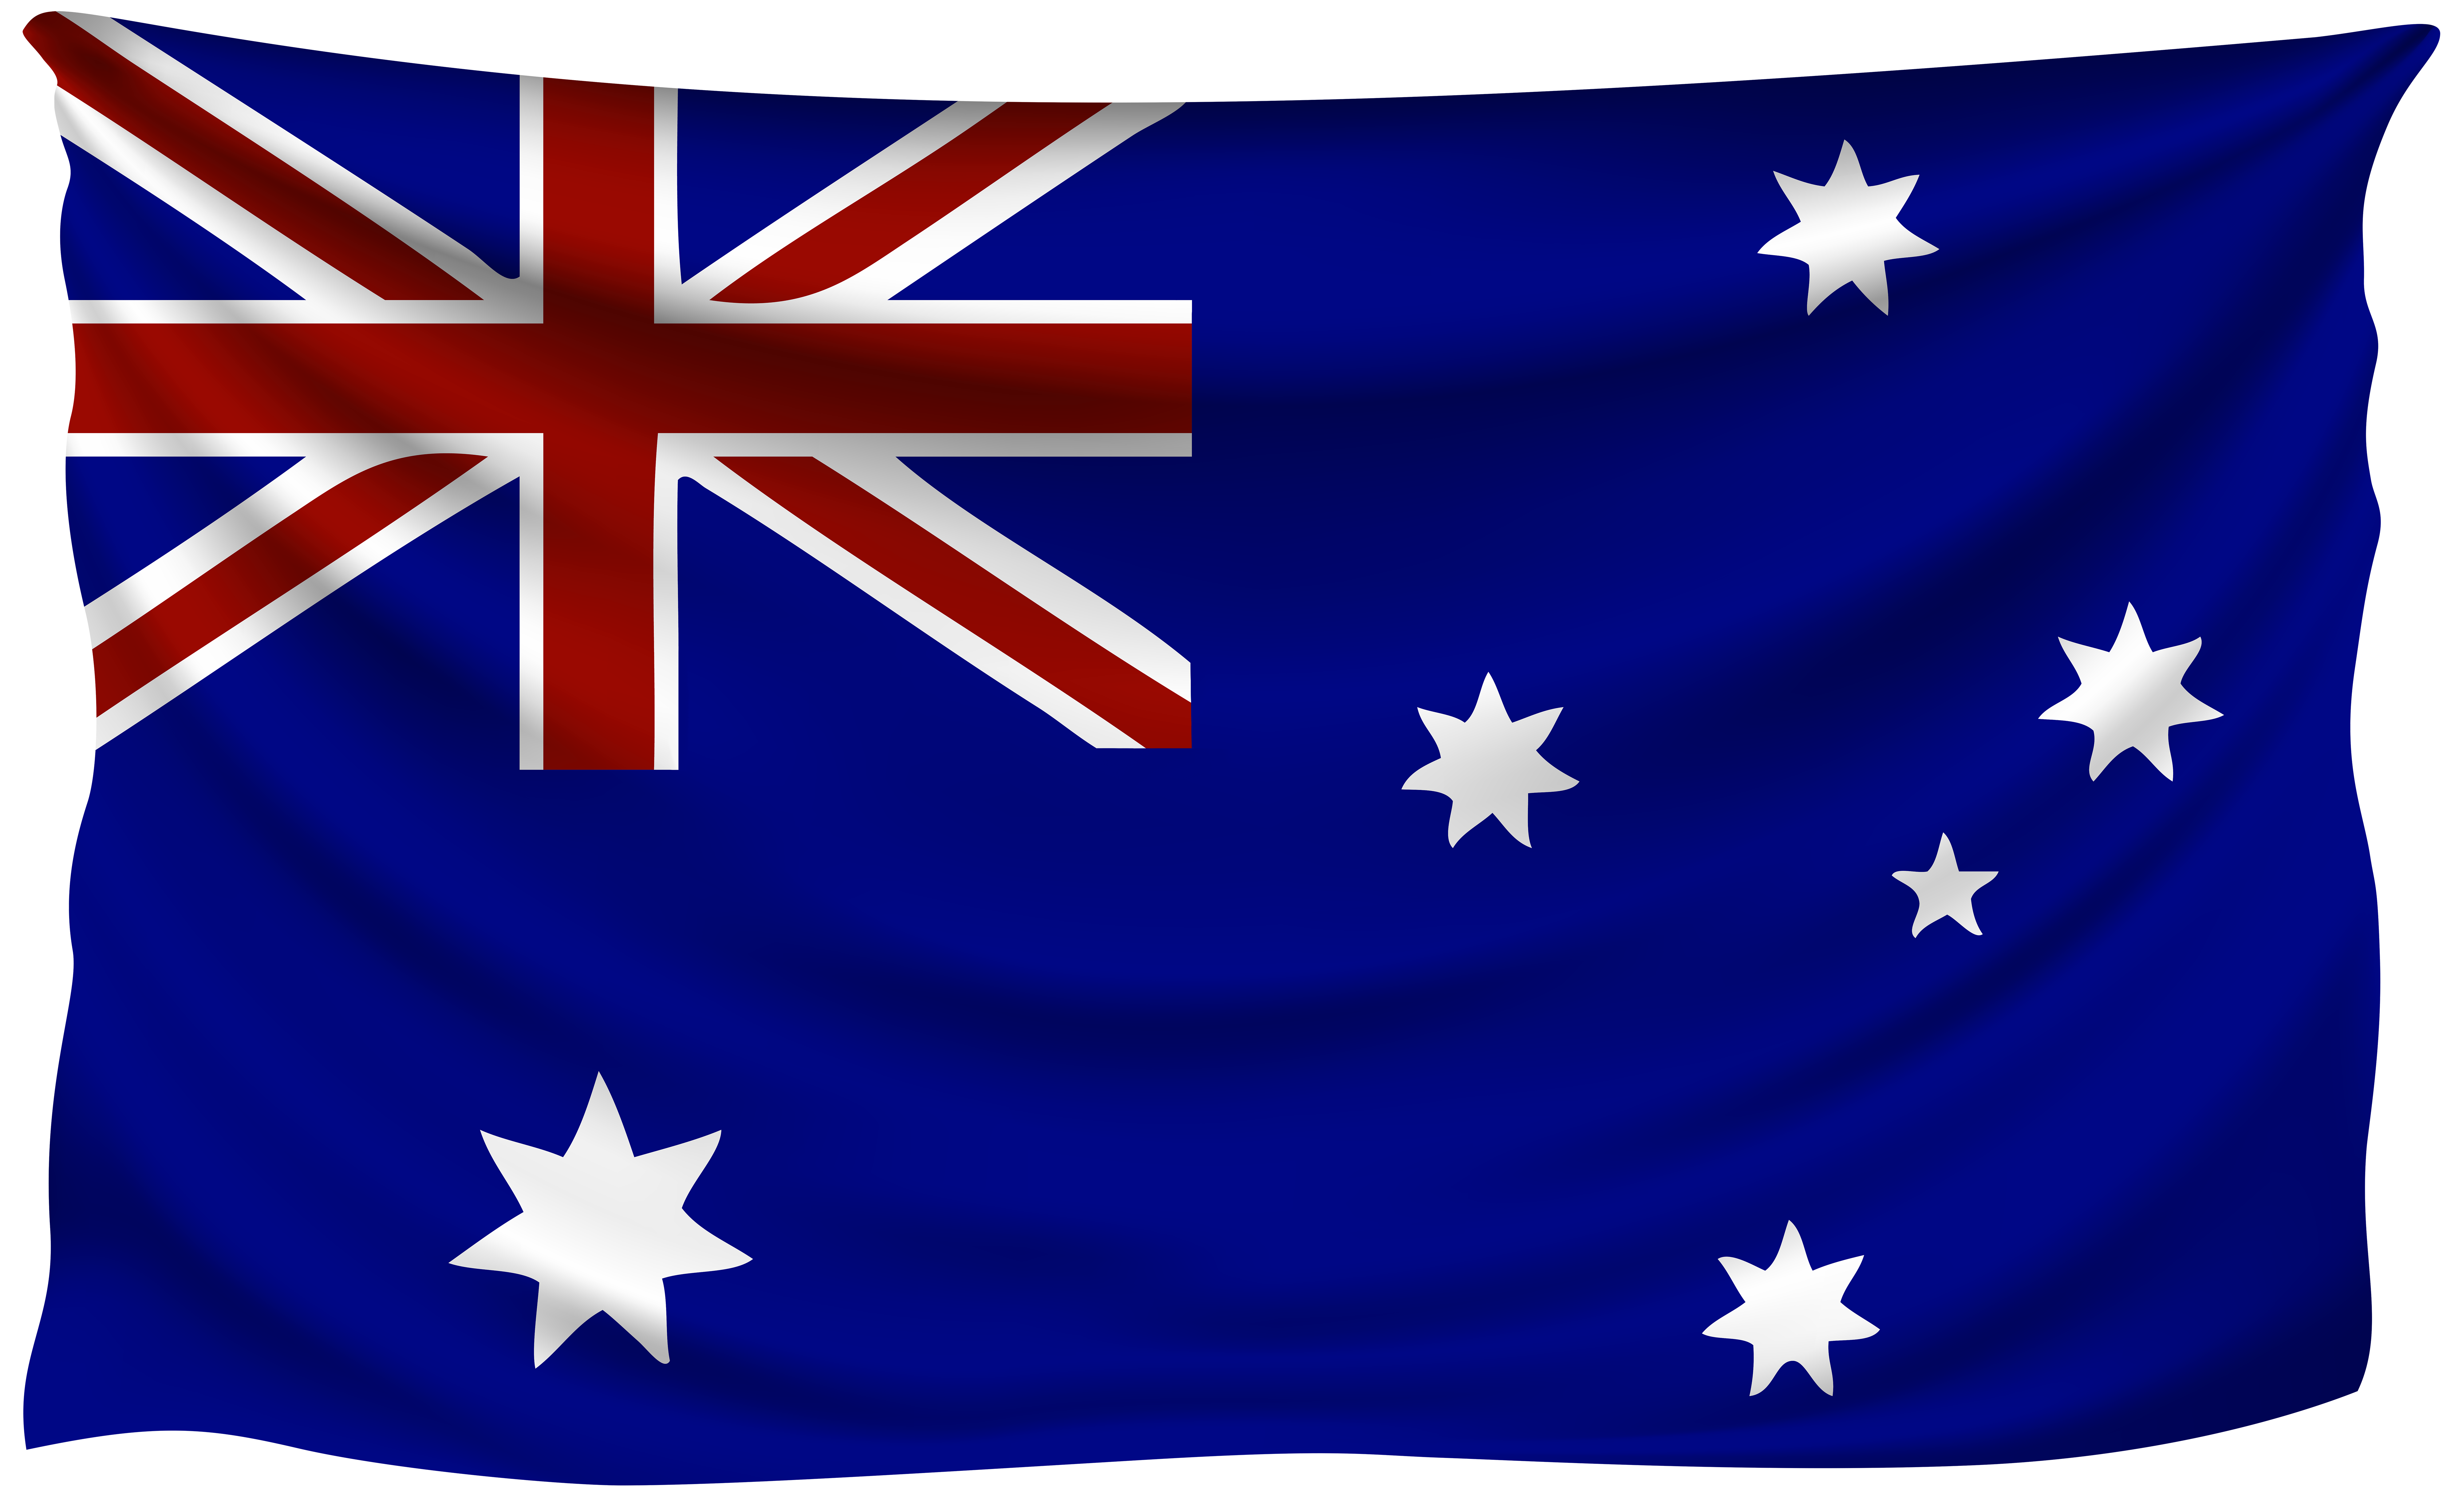 Wrinkled flag gallery yopriceville. Australia clipart high quality